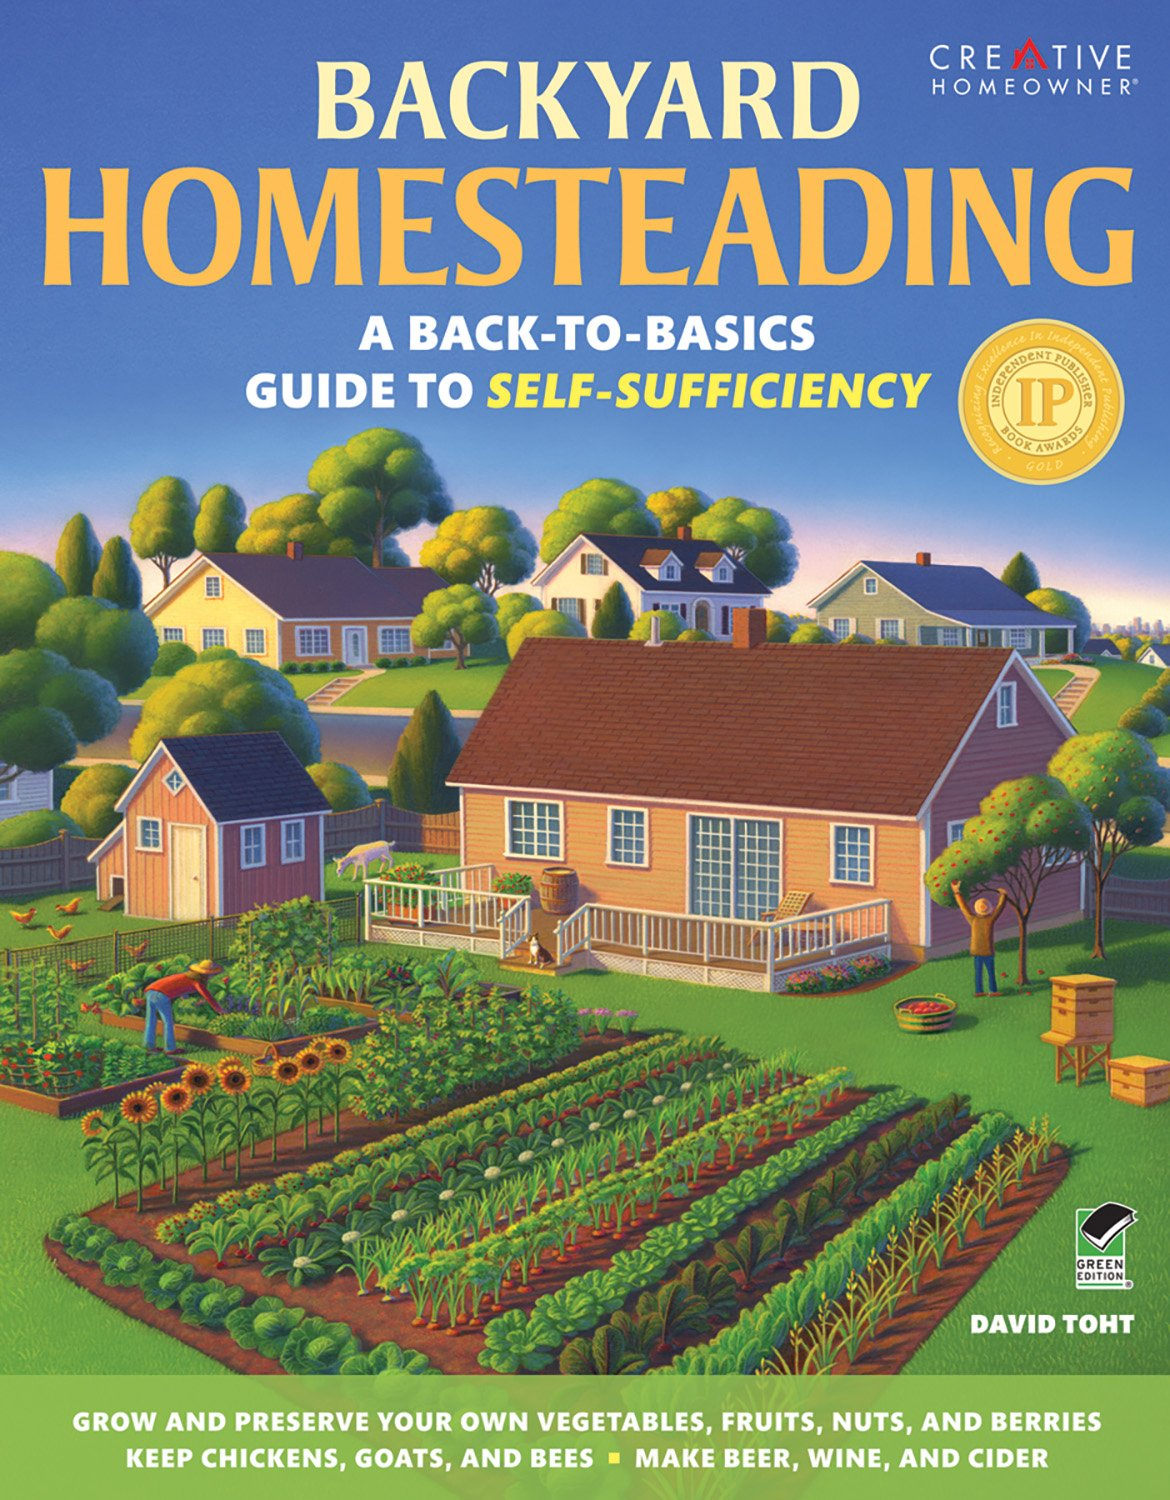 Backyard Homesteading Back Basics Self Sufficiency product image